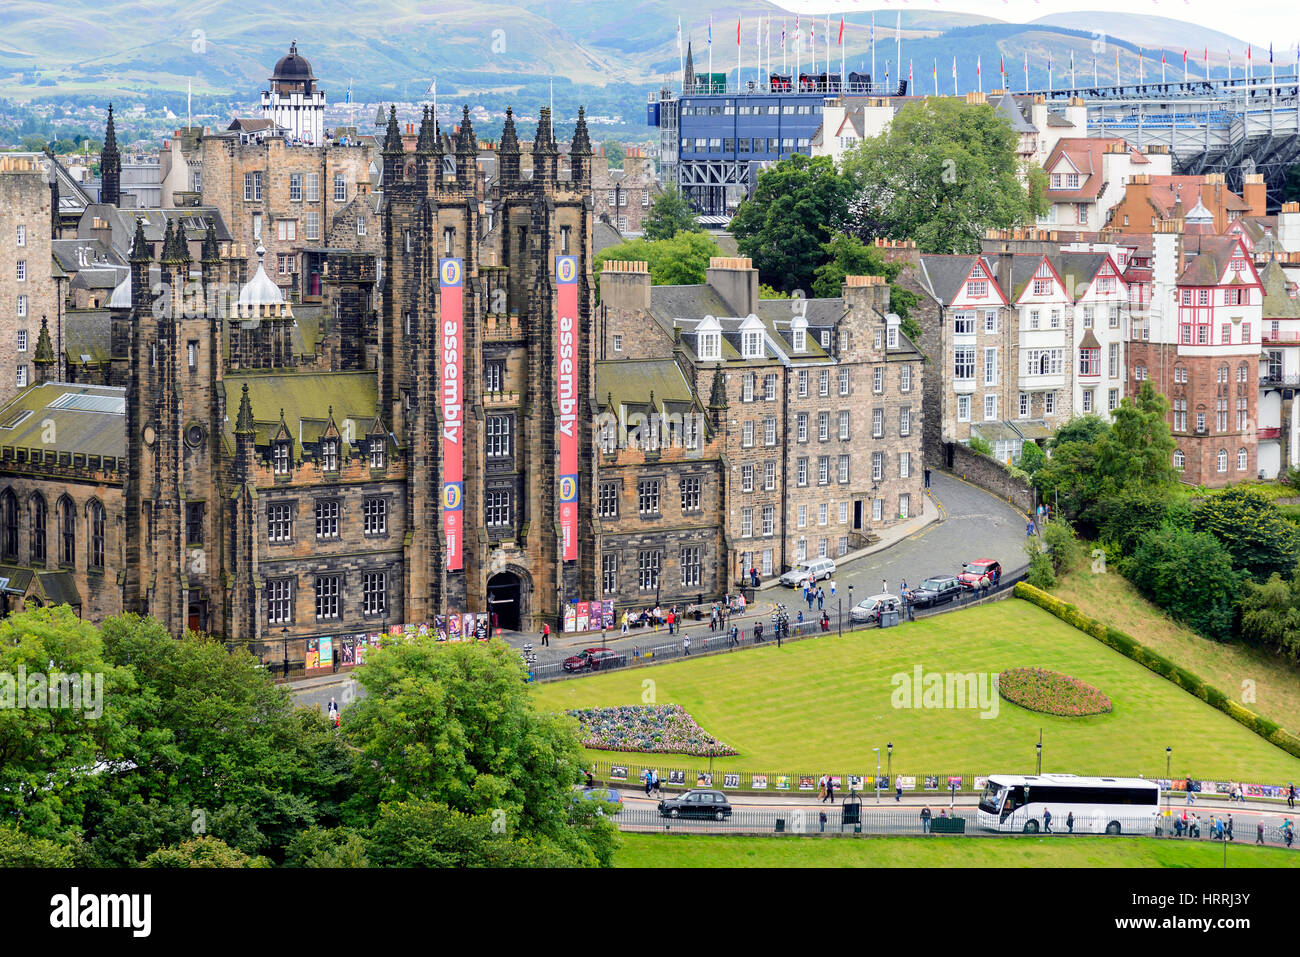 Edinburgh, Scotland - August 15, 2014: View of General Assembly ...